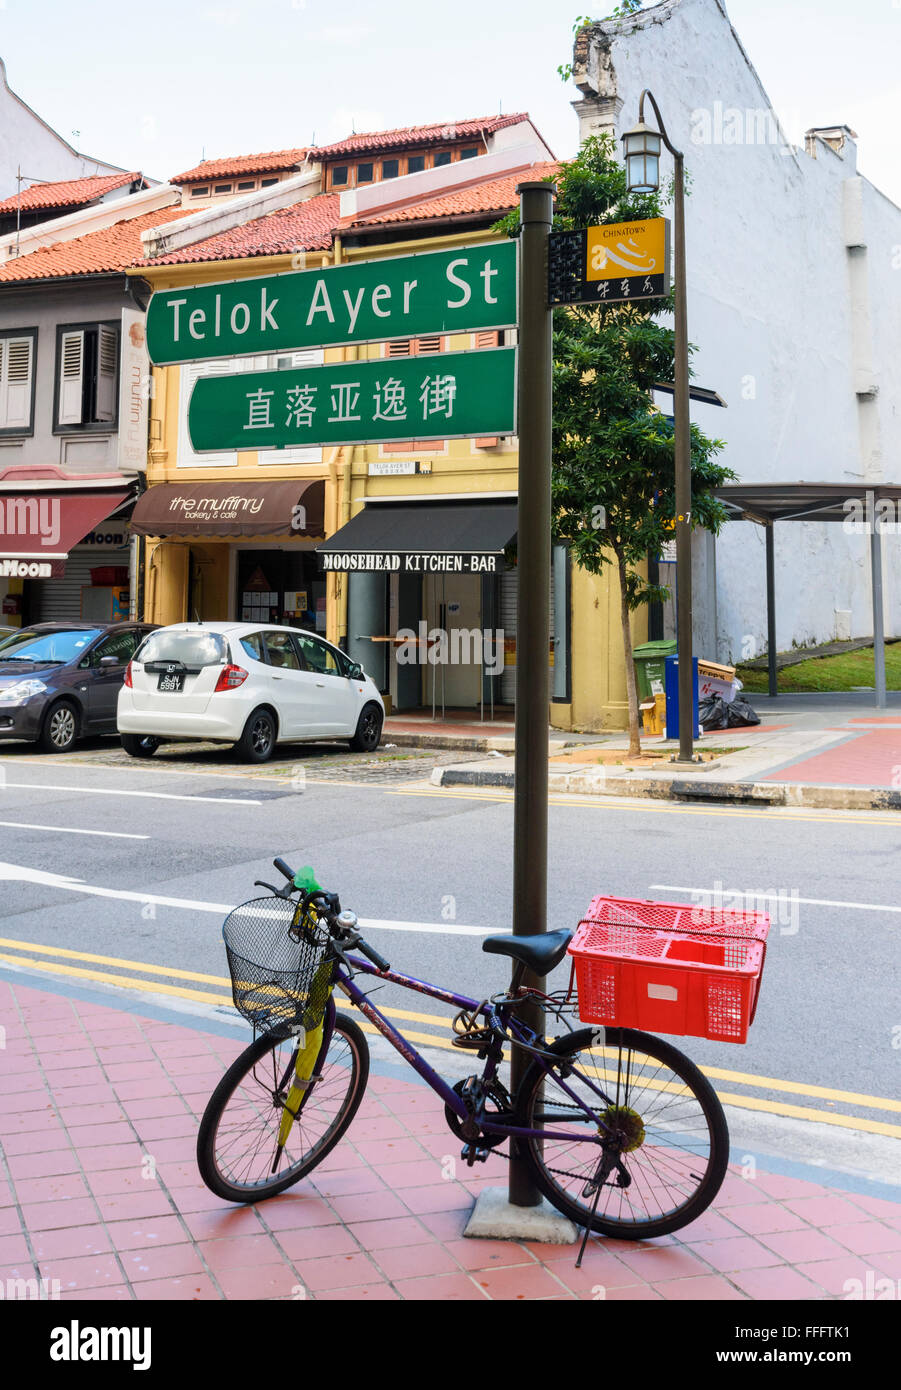 Bicycle leaning against a street sign for Telok Ayer St, Chinatown, Singapore - Stock Image